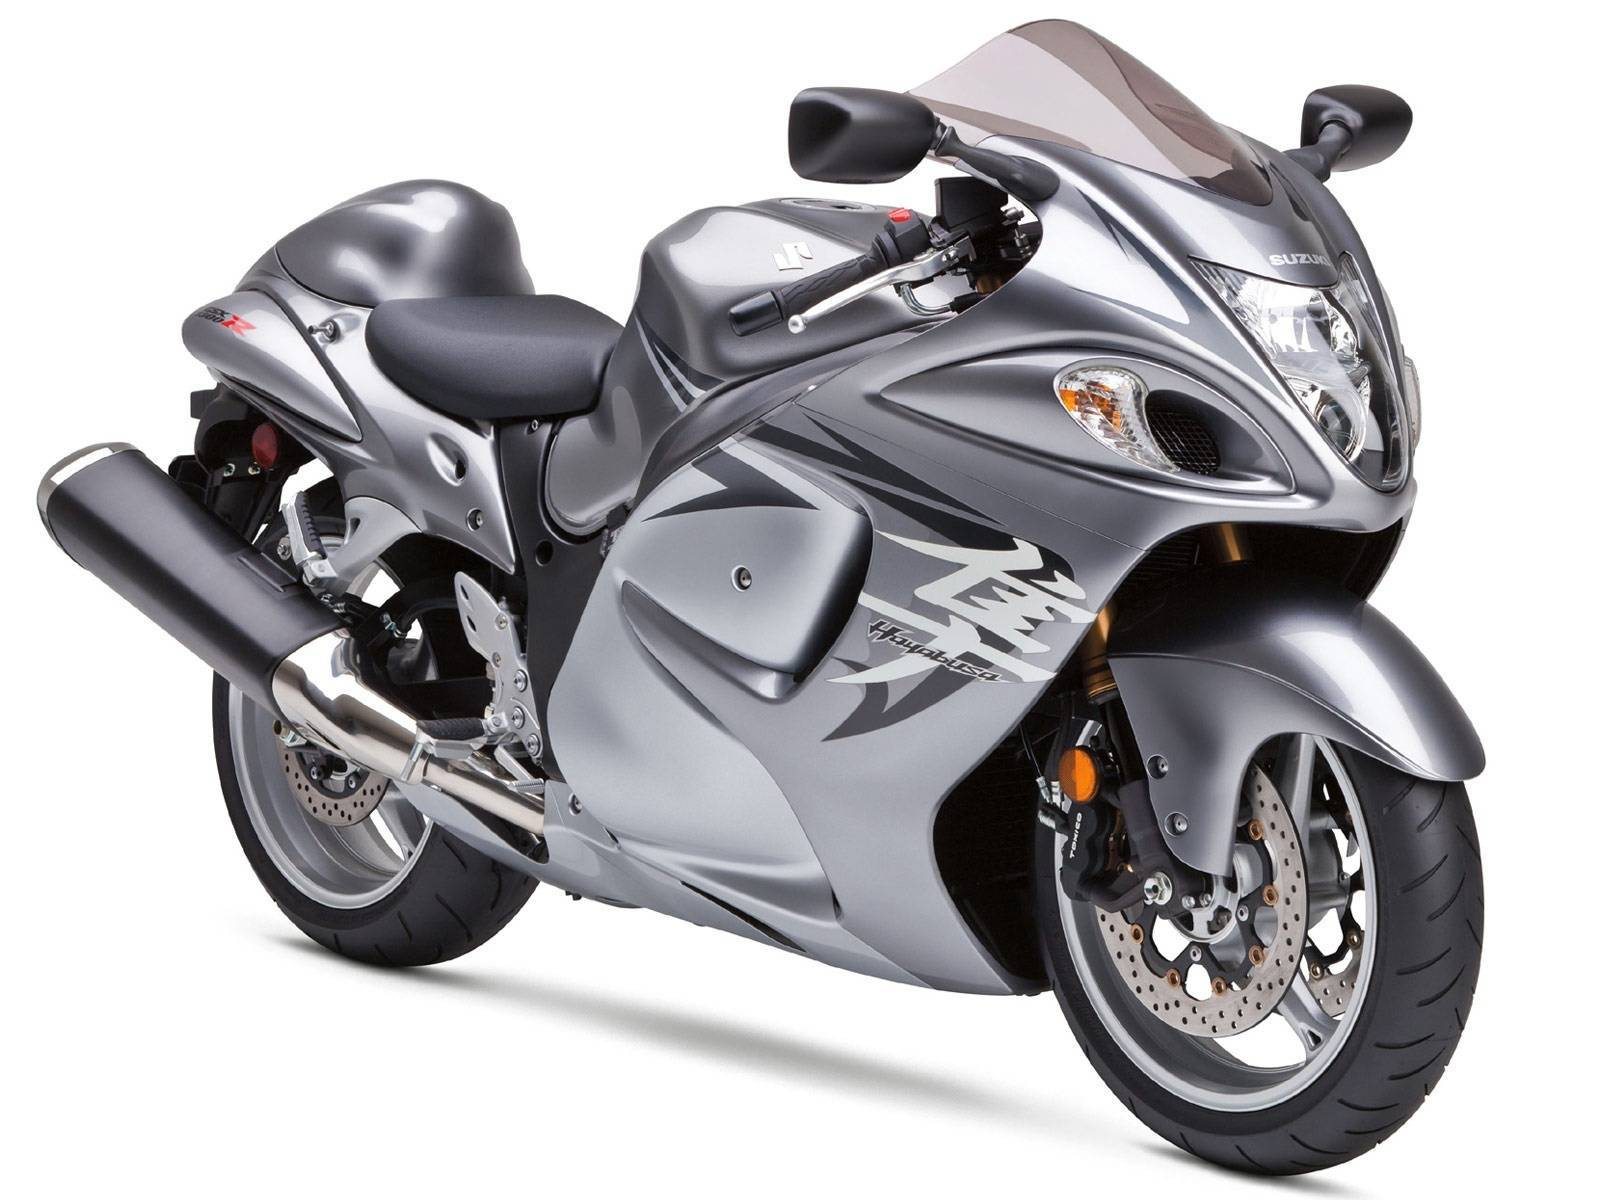 Top 5 150cc 160cc motorcycles in the country indian cars bikes - Suzu Hayabusa 4